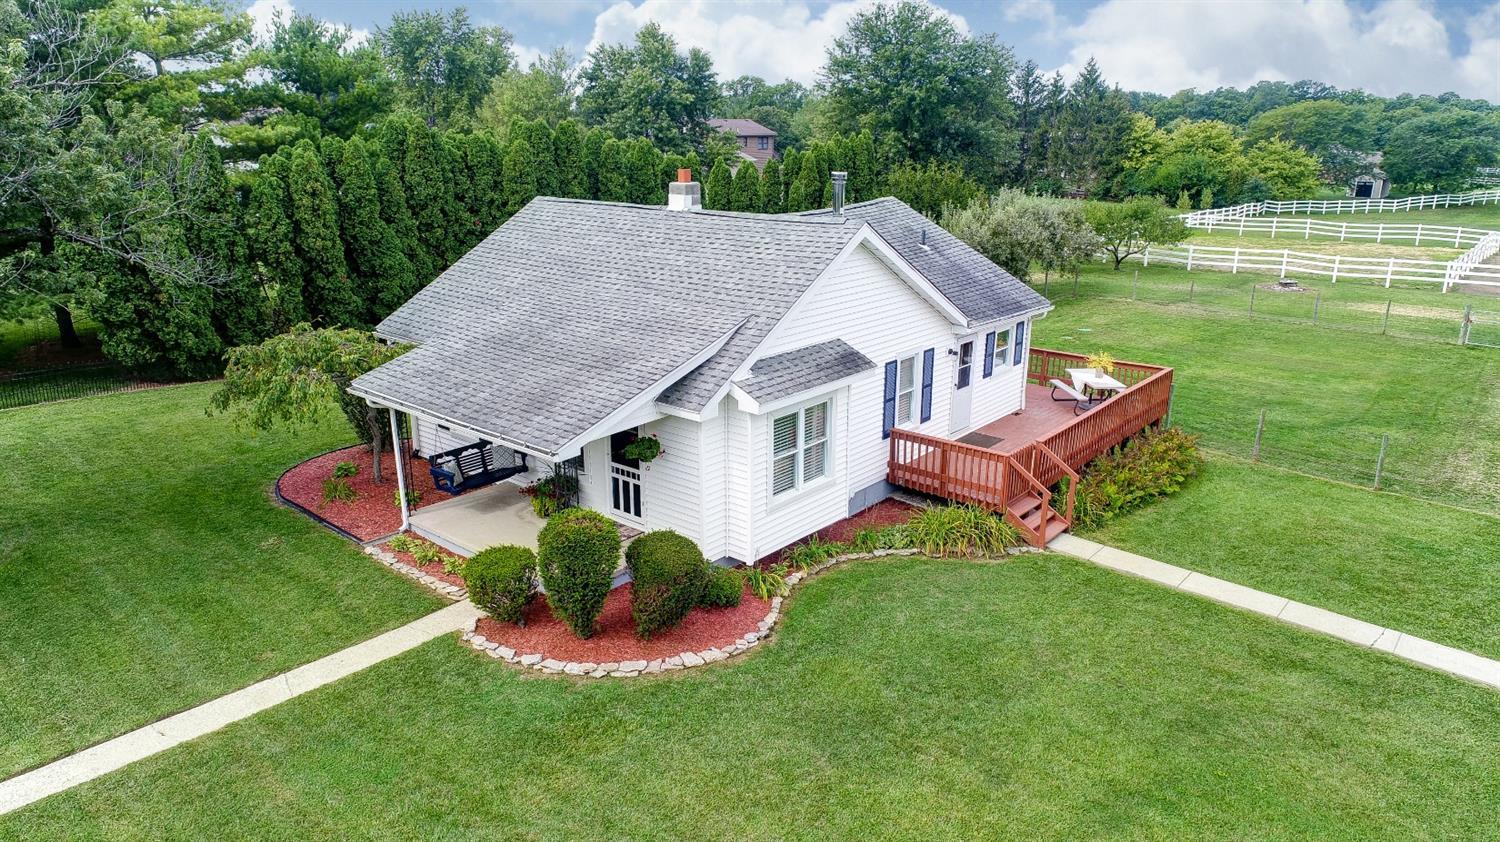 Property for sale at 9765 Clearcreek Franklin Road, Springboro,  Ohio 45342